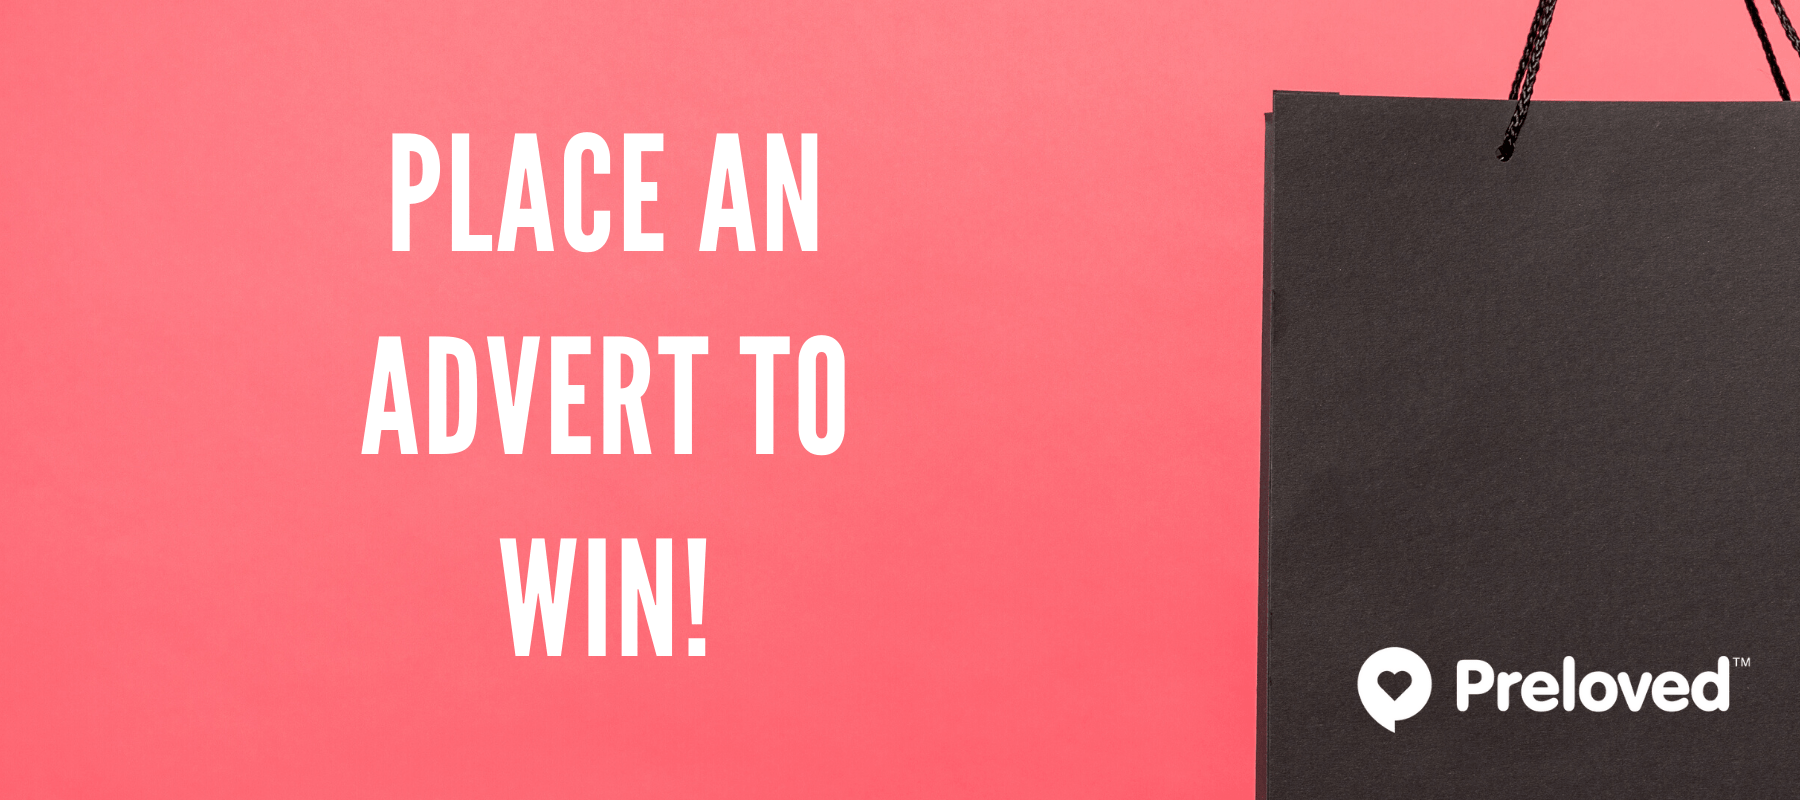 Place an Advert to Win!